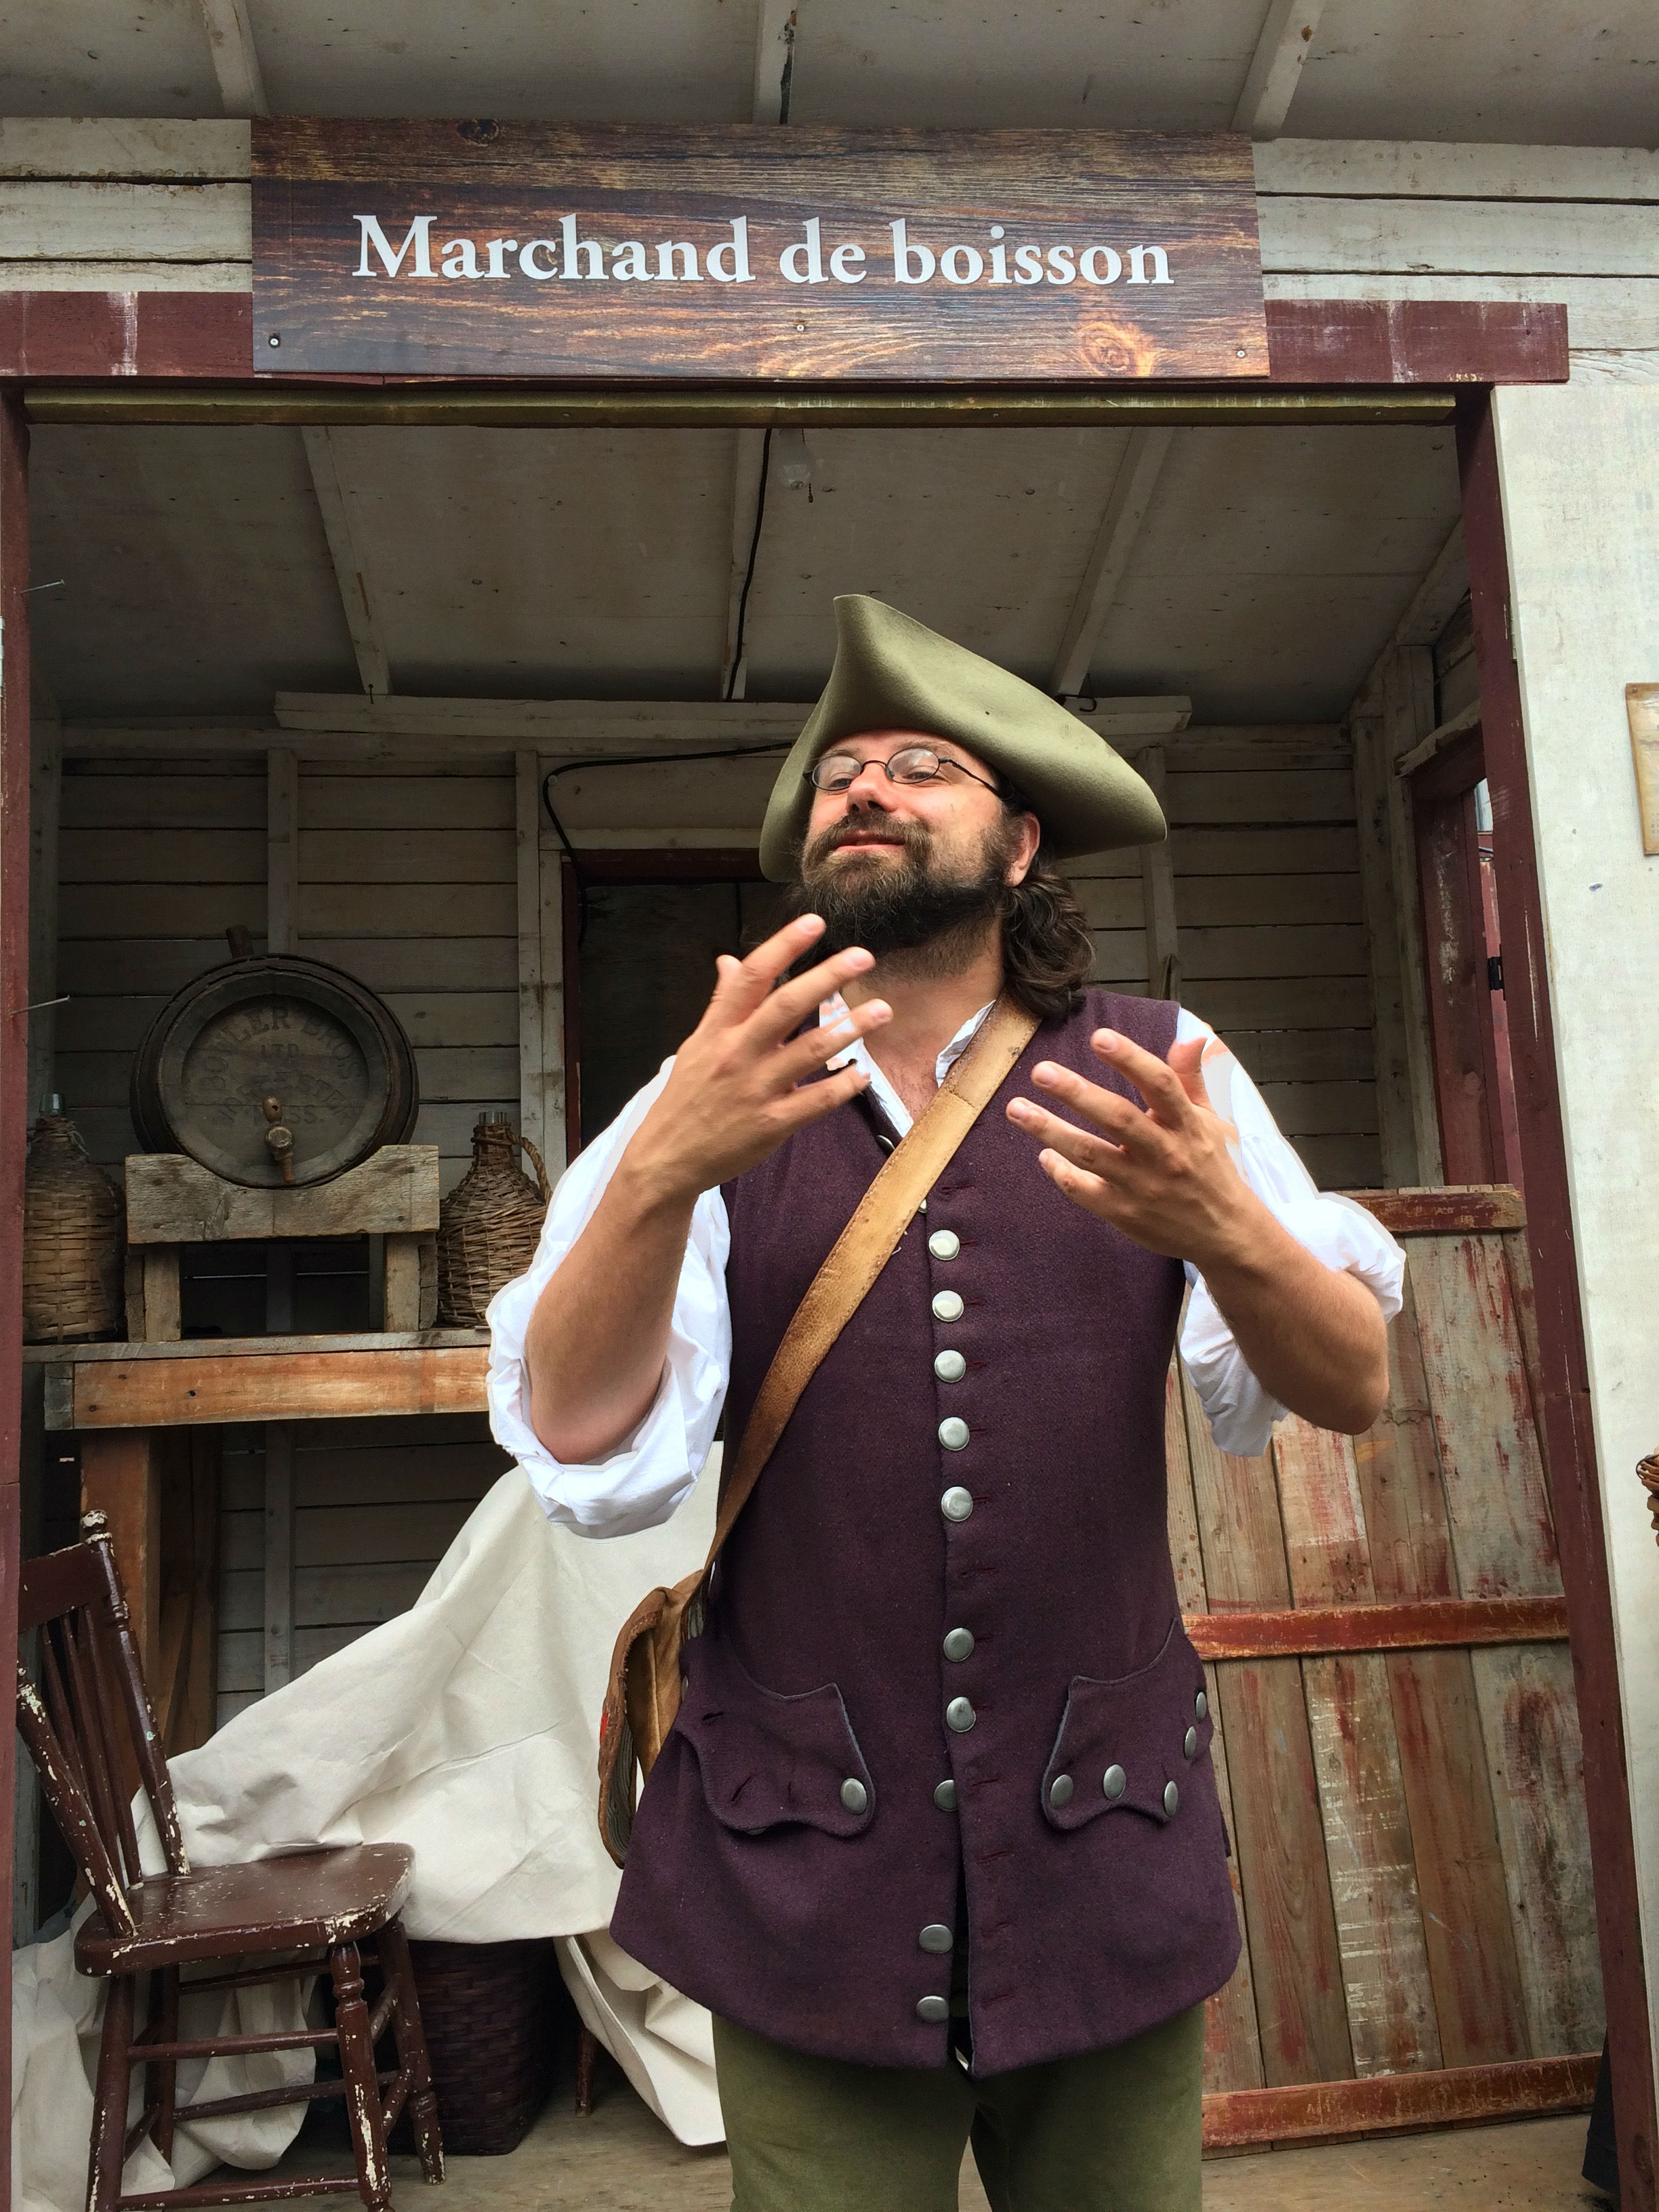 Caption: Old World wine merchant at the New France Festival., Credit: Photo by Tonya Fitzpatrick